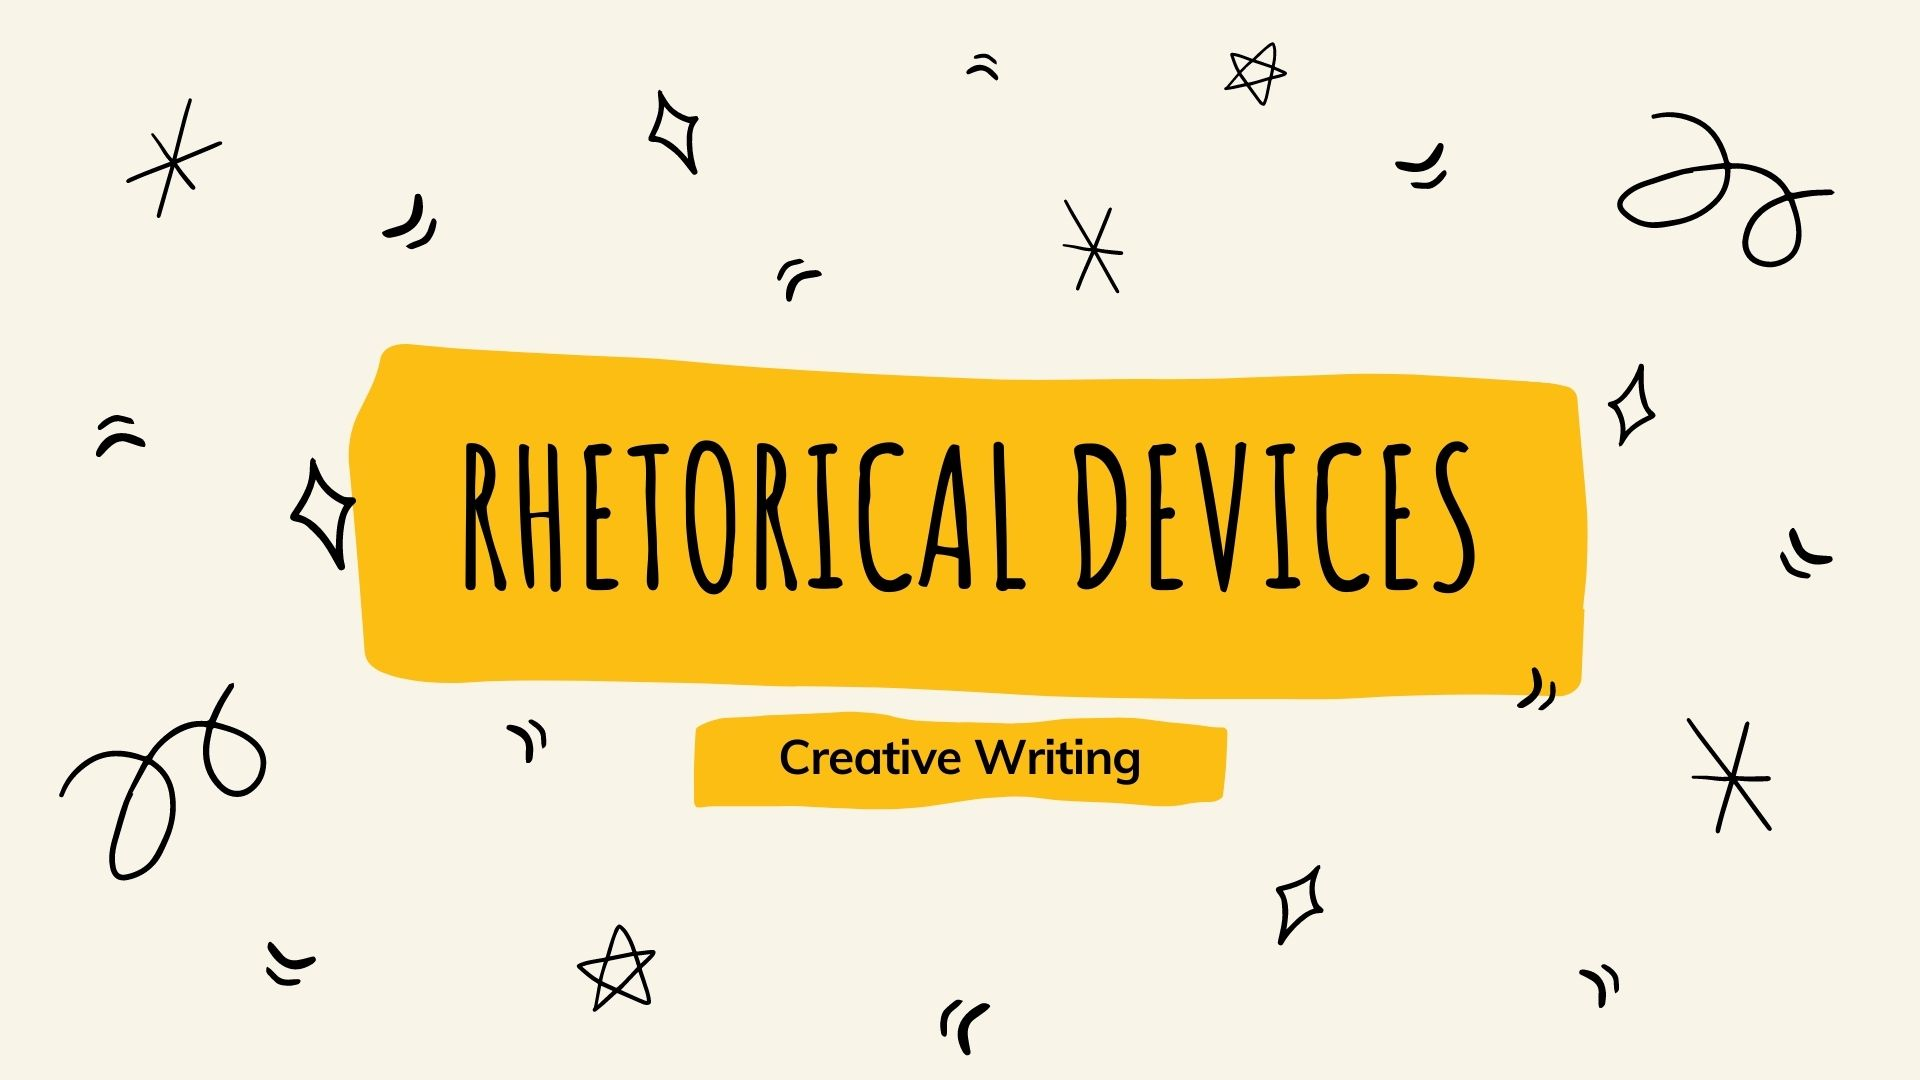 Rhetorical devices and the 10 most commonly used rhetorical devices